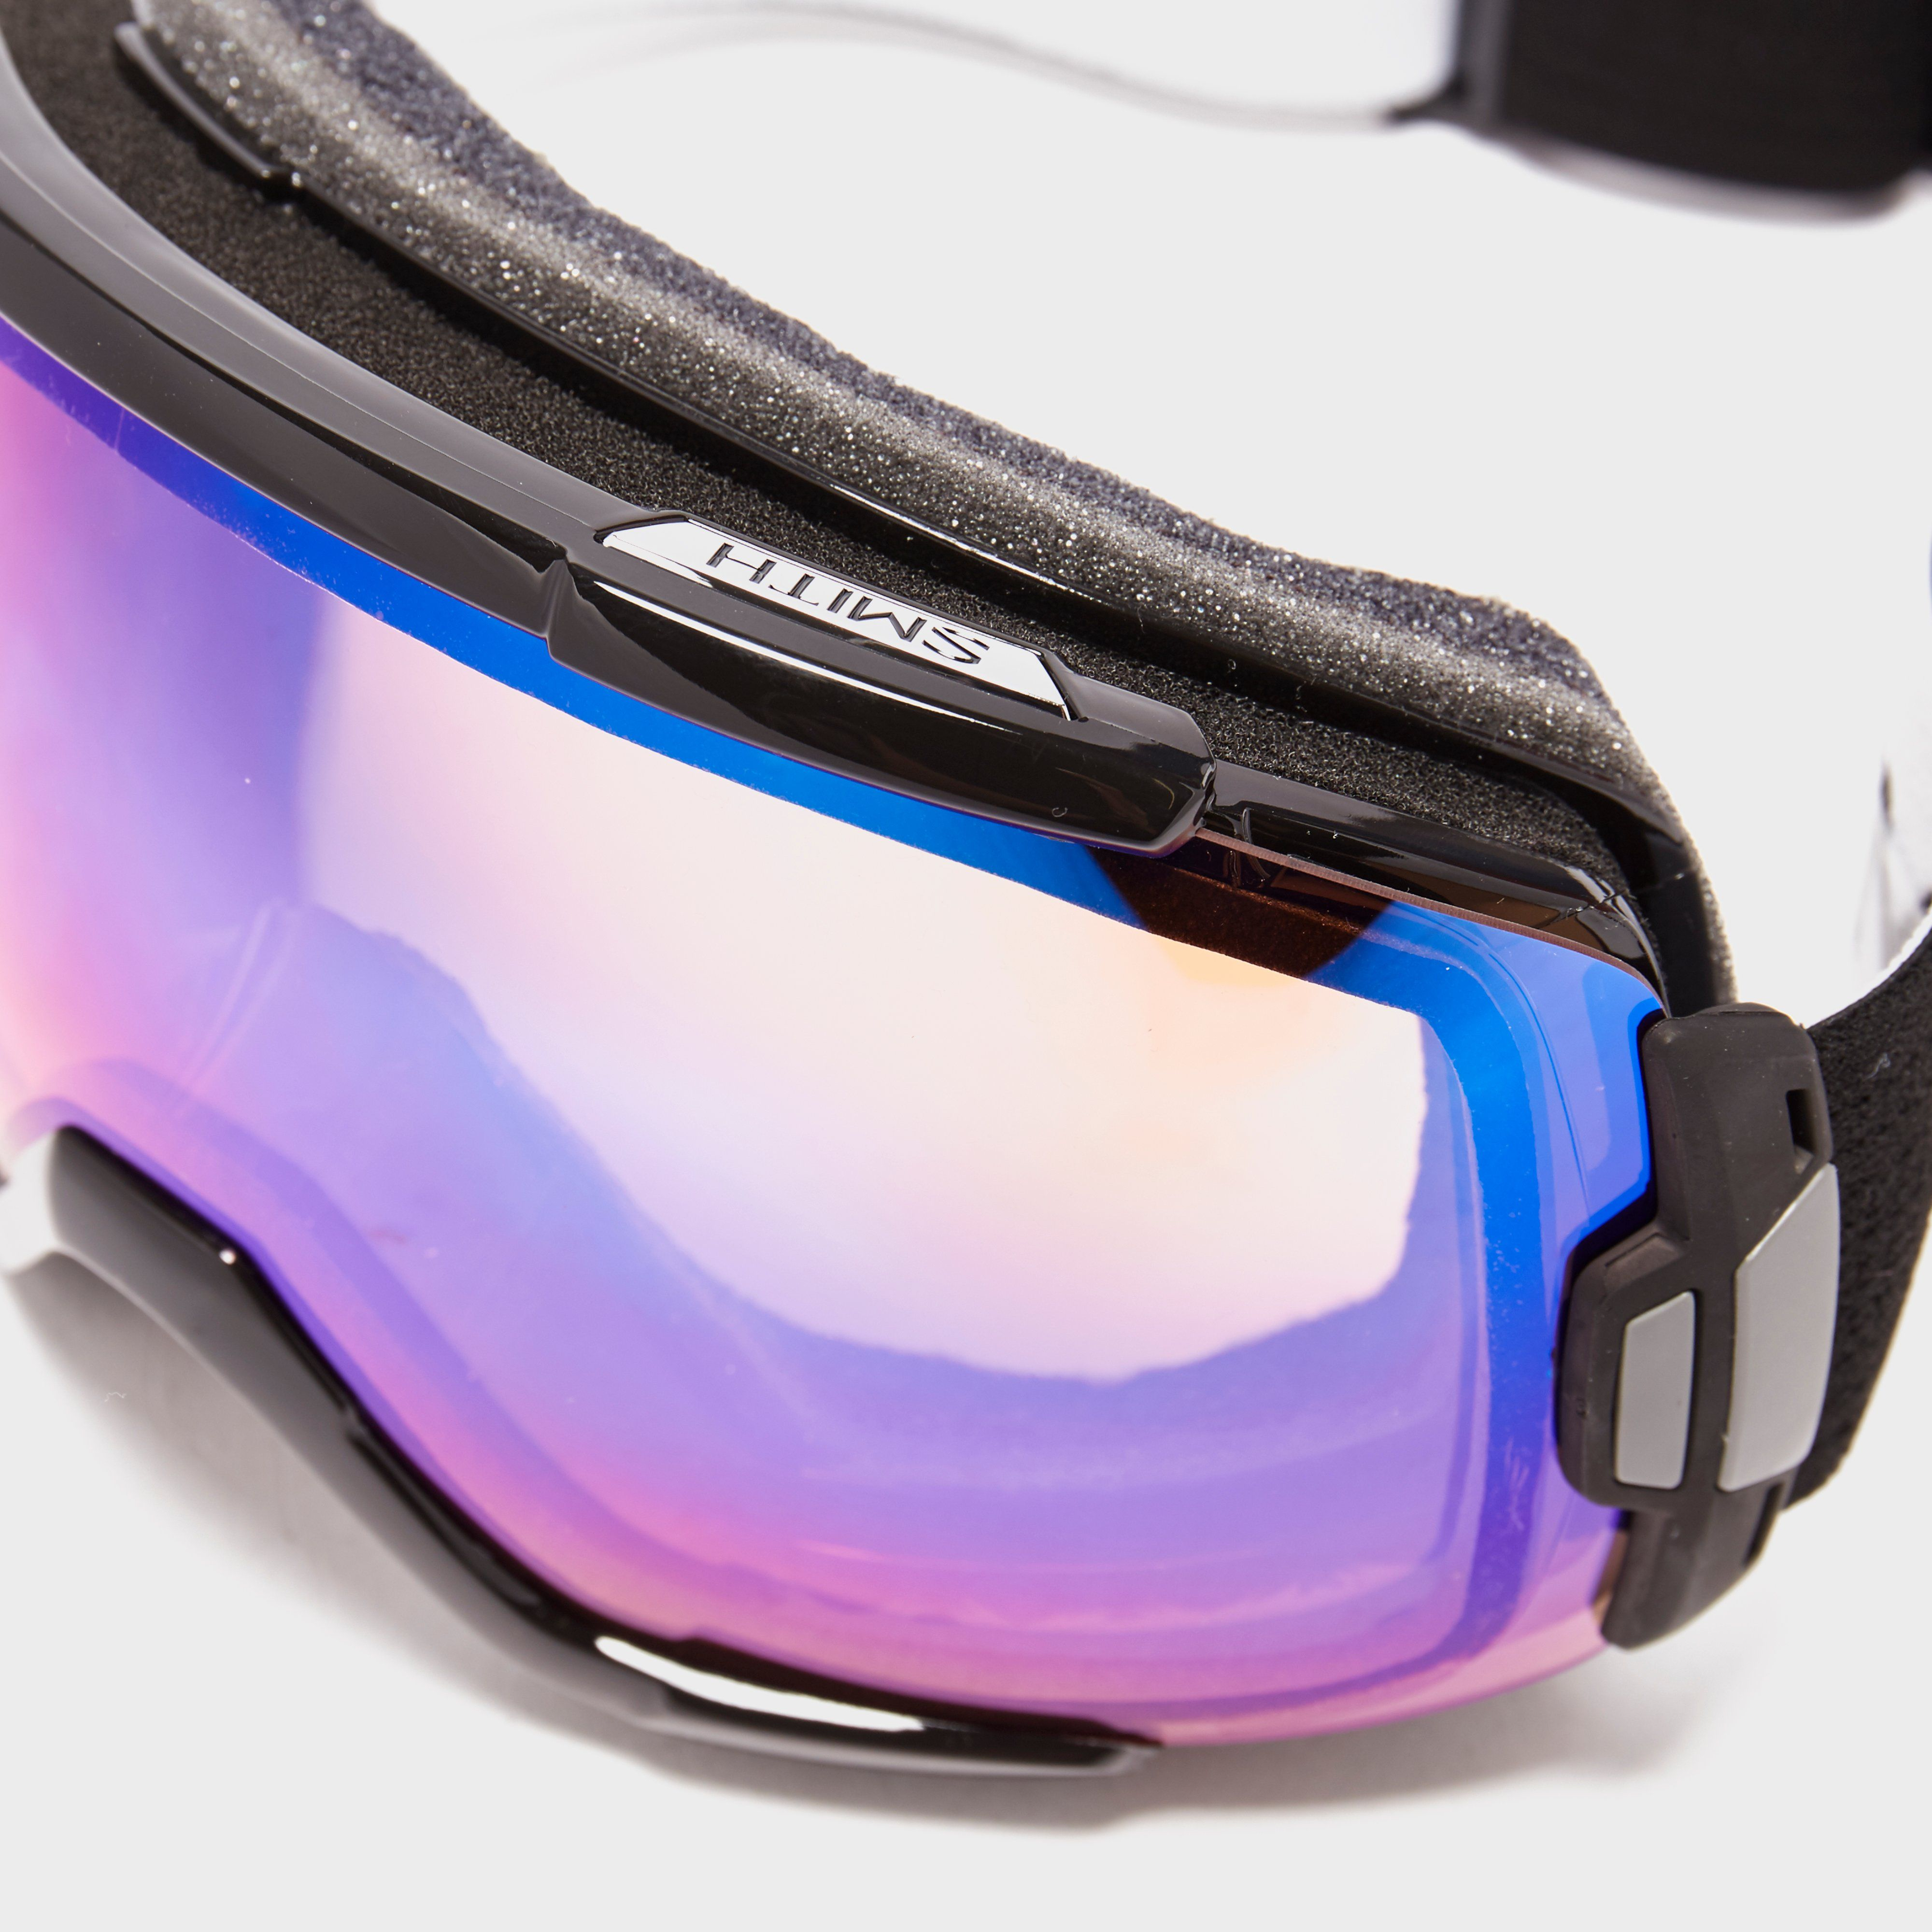 SMITH Men's Vice Goggles